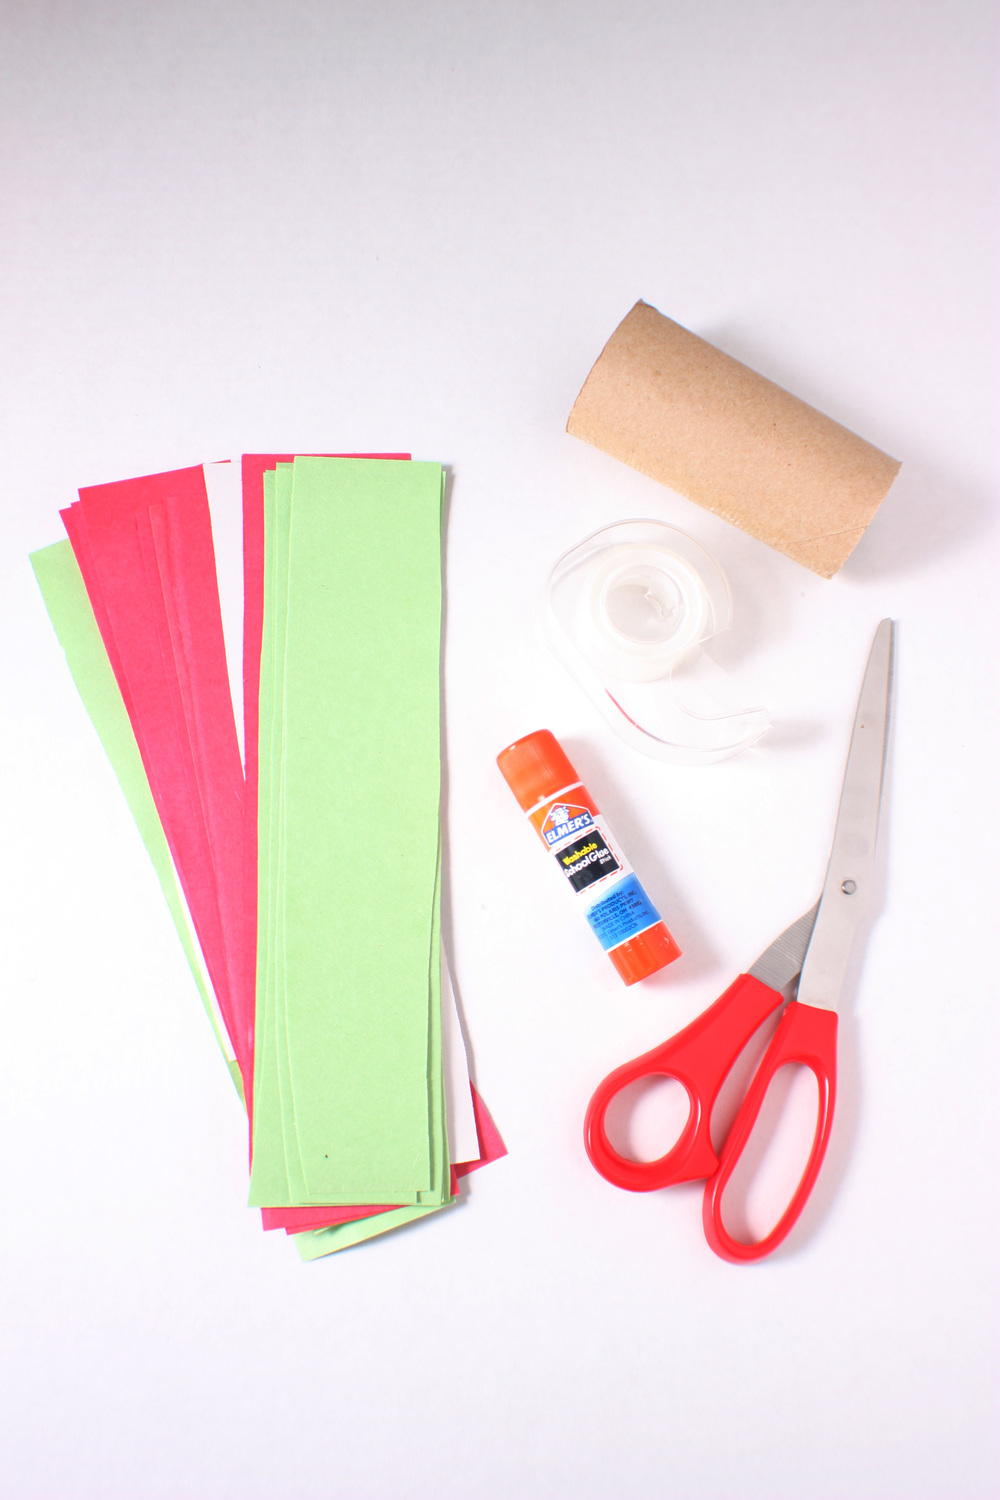 Supplies: Paper strips Paper rolls Glue or Tape Scissors